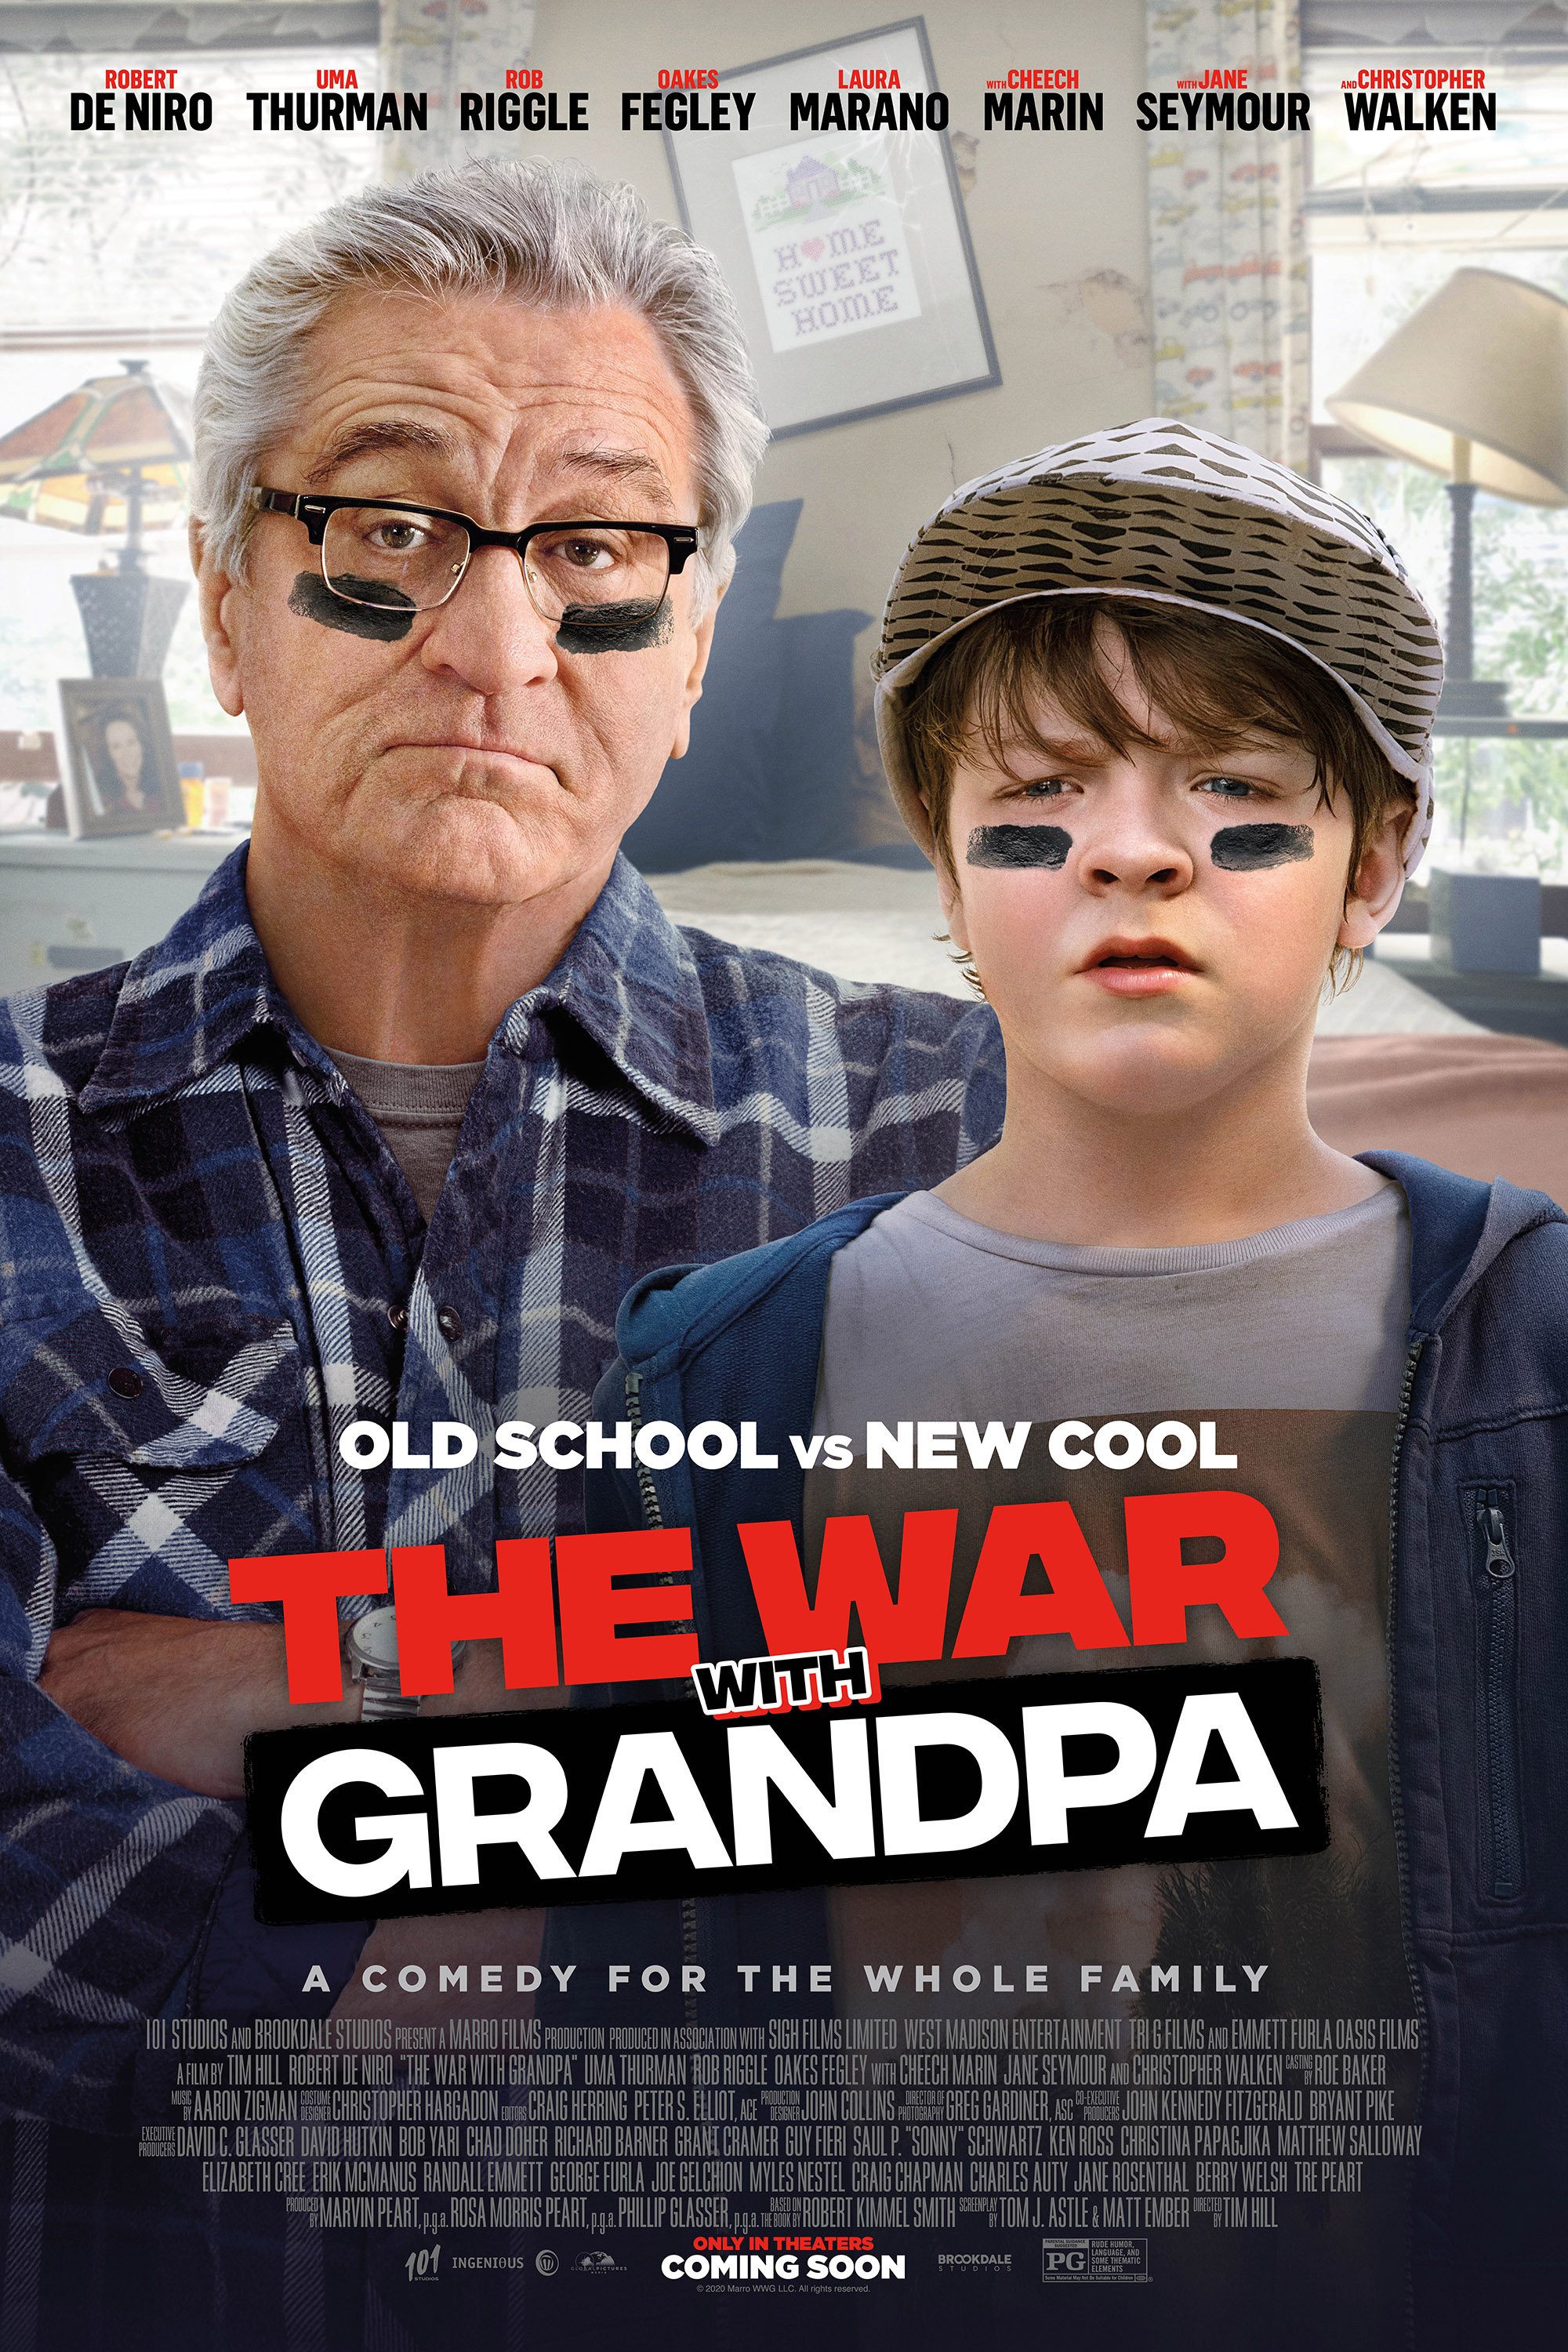 Poster for War with Grandpa, The